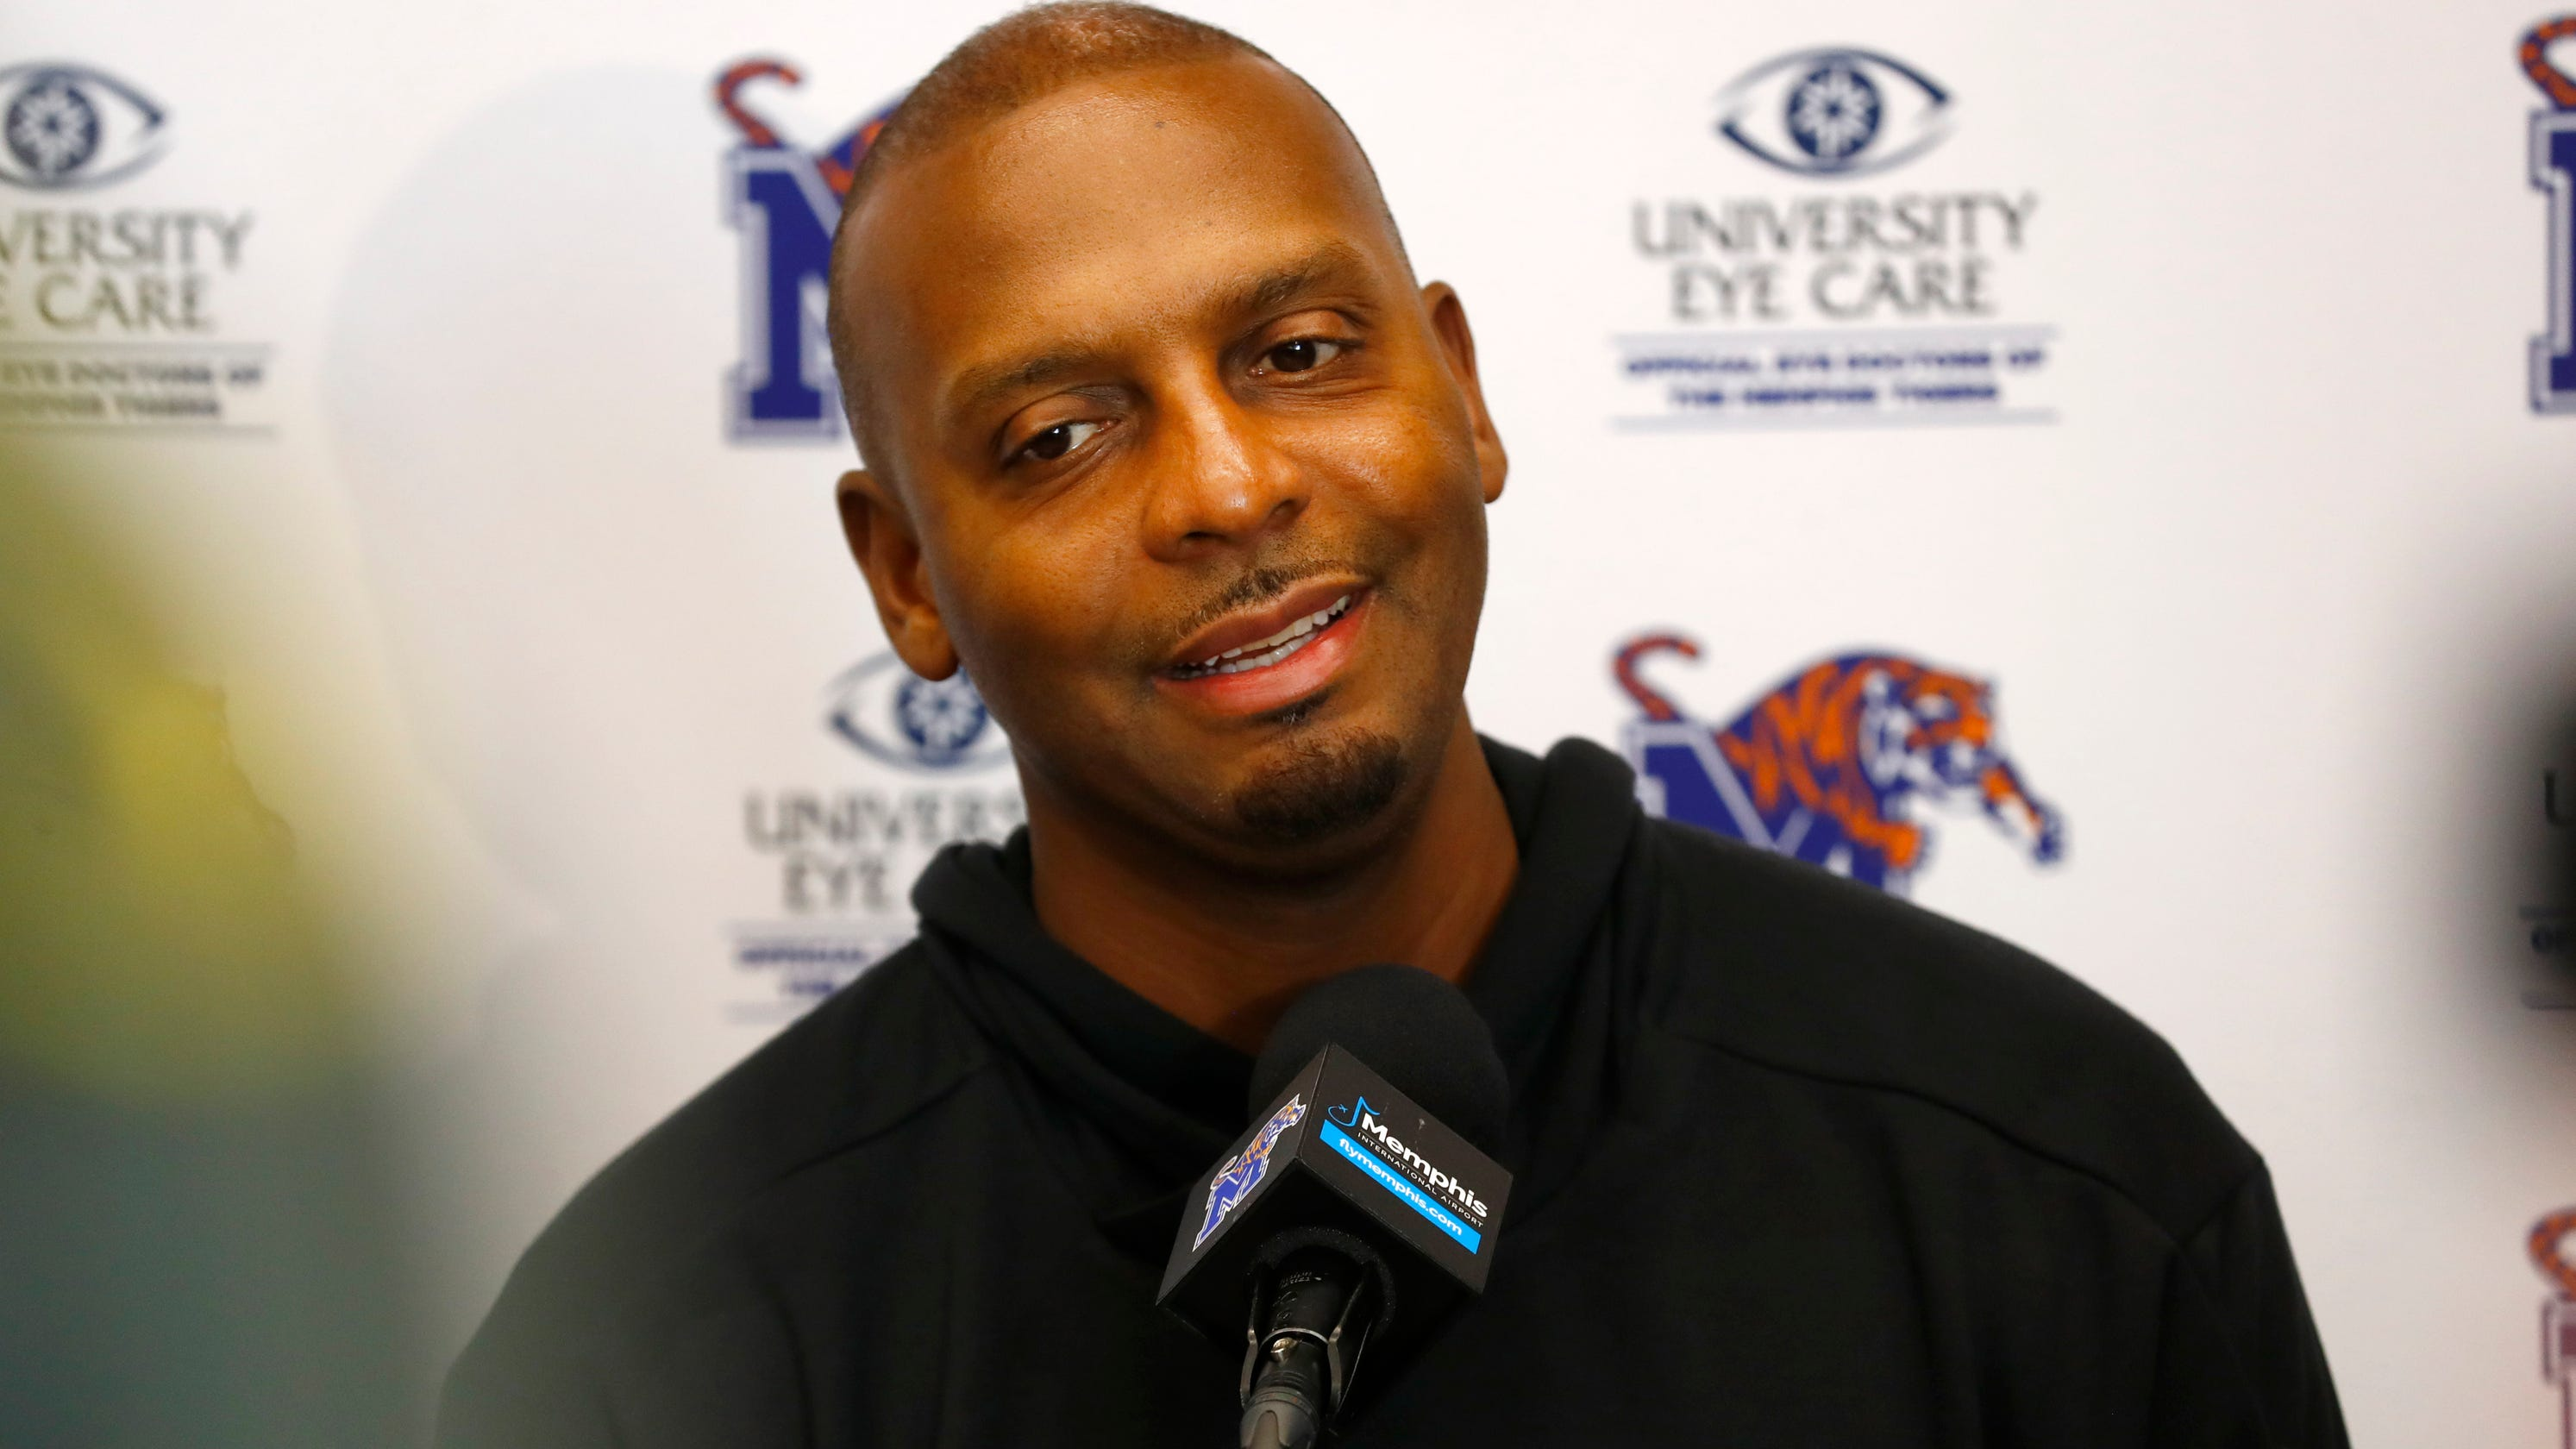 Penny Hardaway challenges Ja Morant, Tracy McGrady, Yo Gotti and others to 'pledge to vote' in November